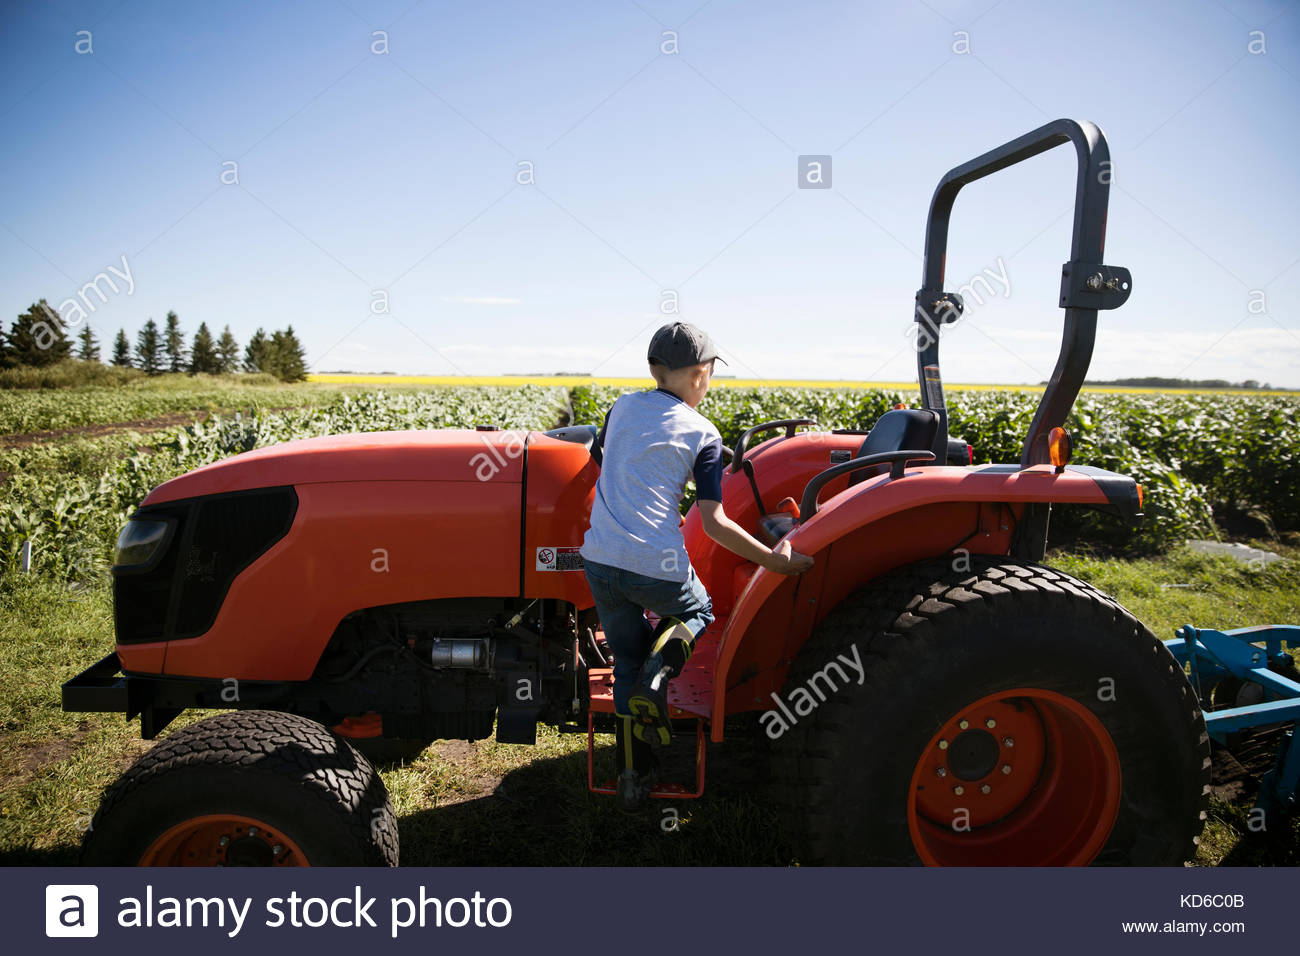 Boy On Tractor : Tractor boys stock photos images alamy